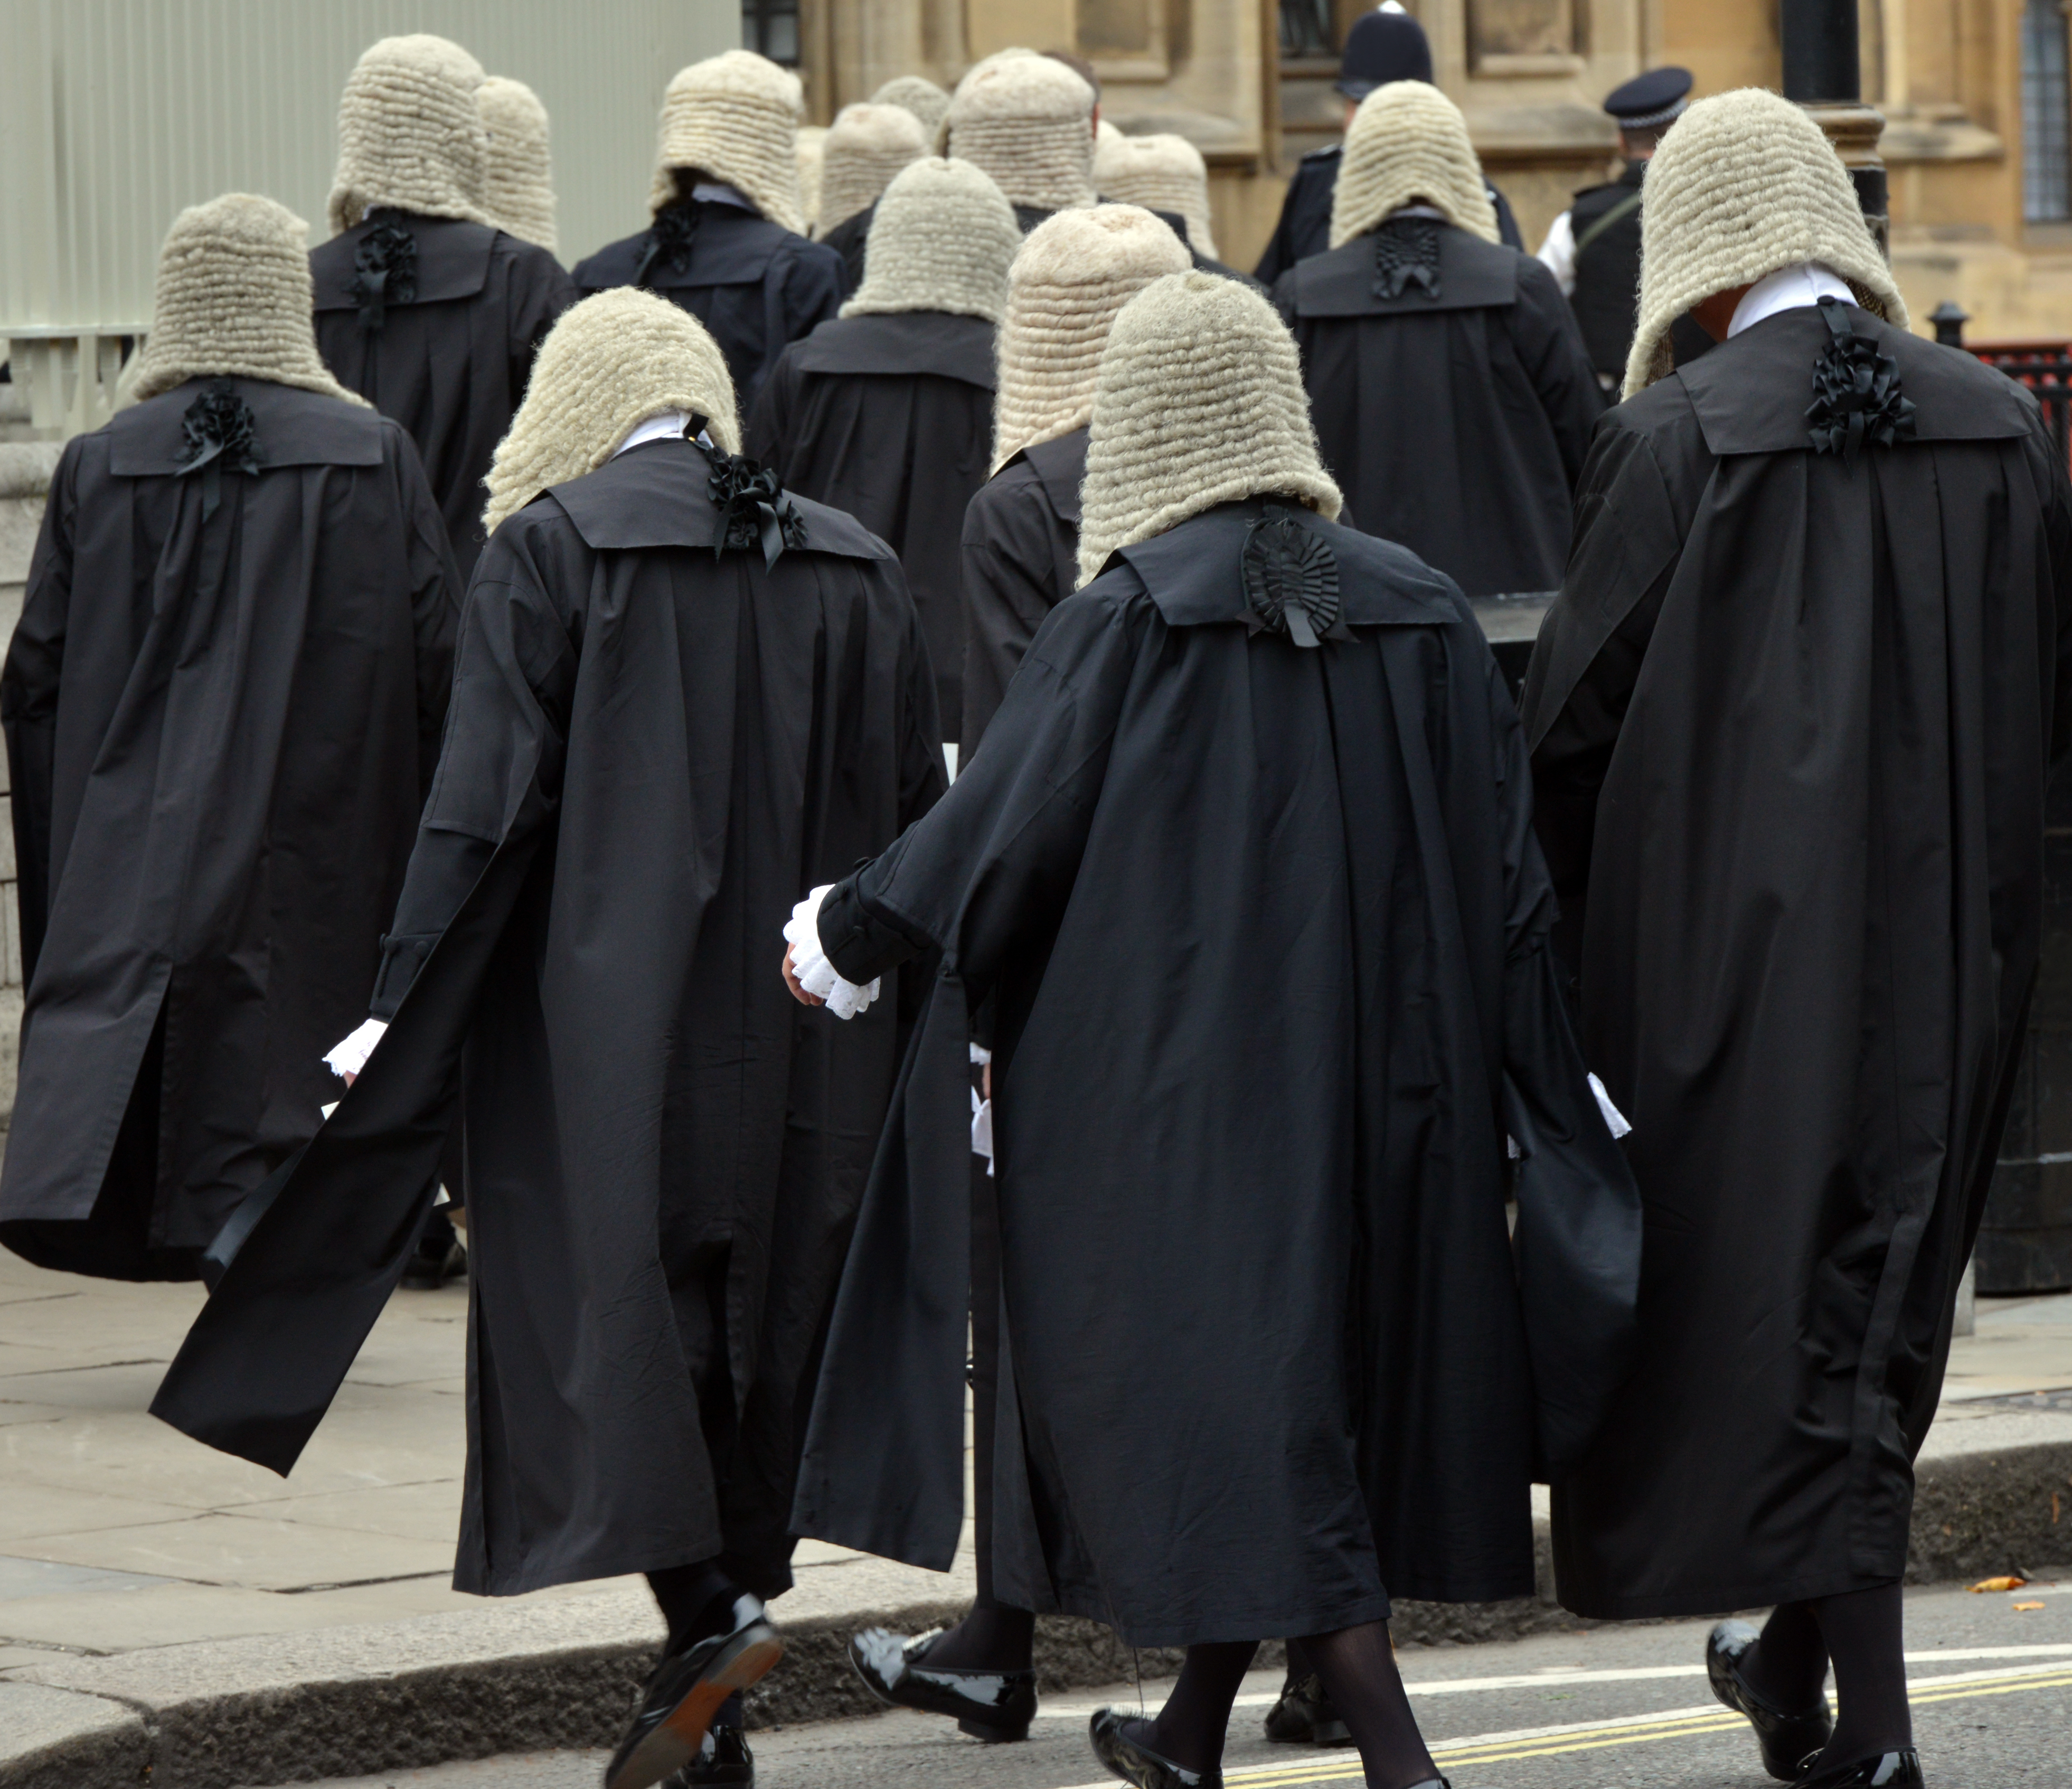 British judges wearing traditional ceremonial wigs and robes in a procession at Westminster, London